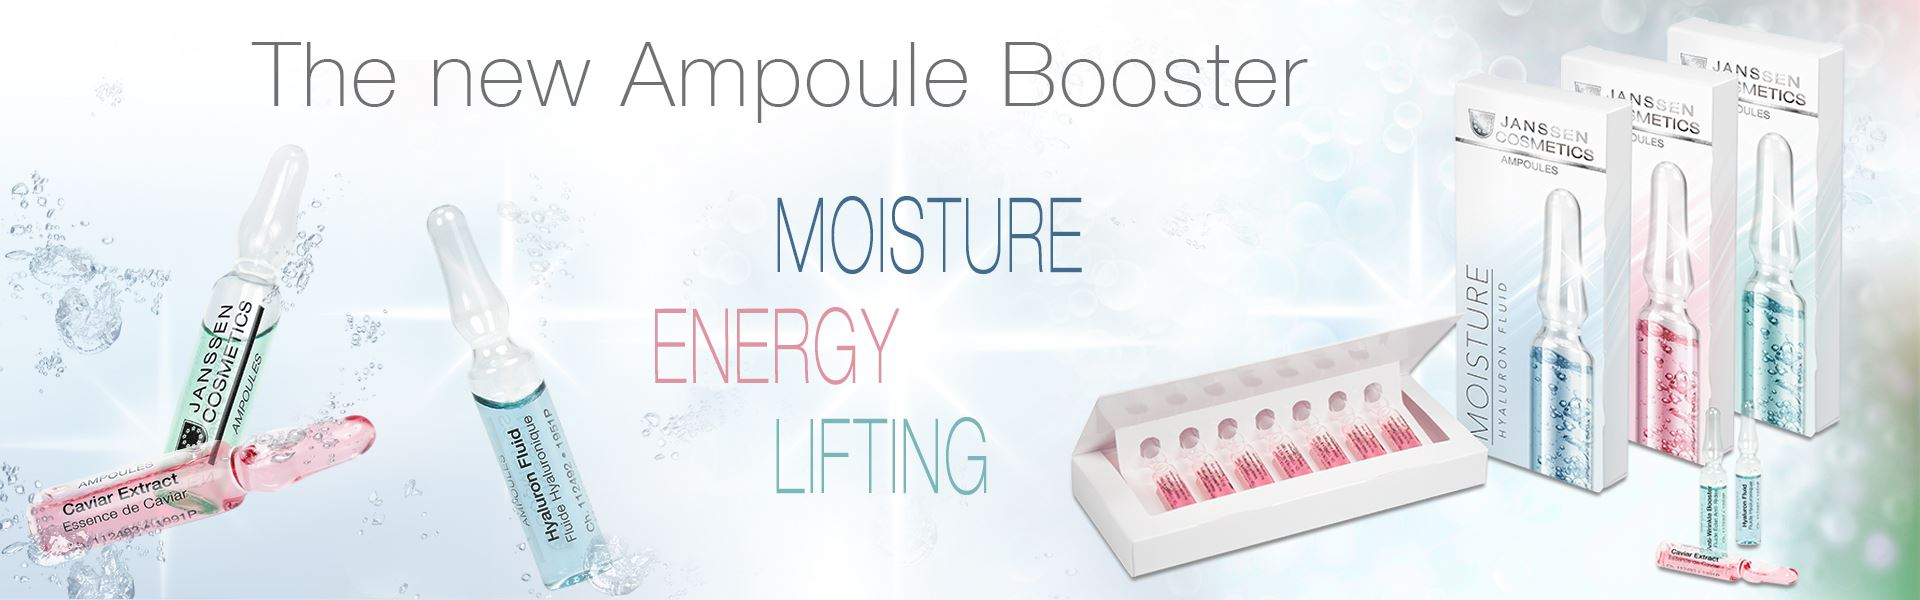 the new Ampoule Boosters of Jansen Cosmetics: Moisture, Energy and Lifting